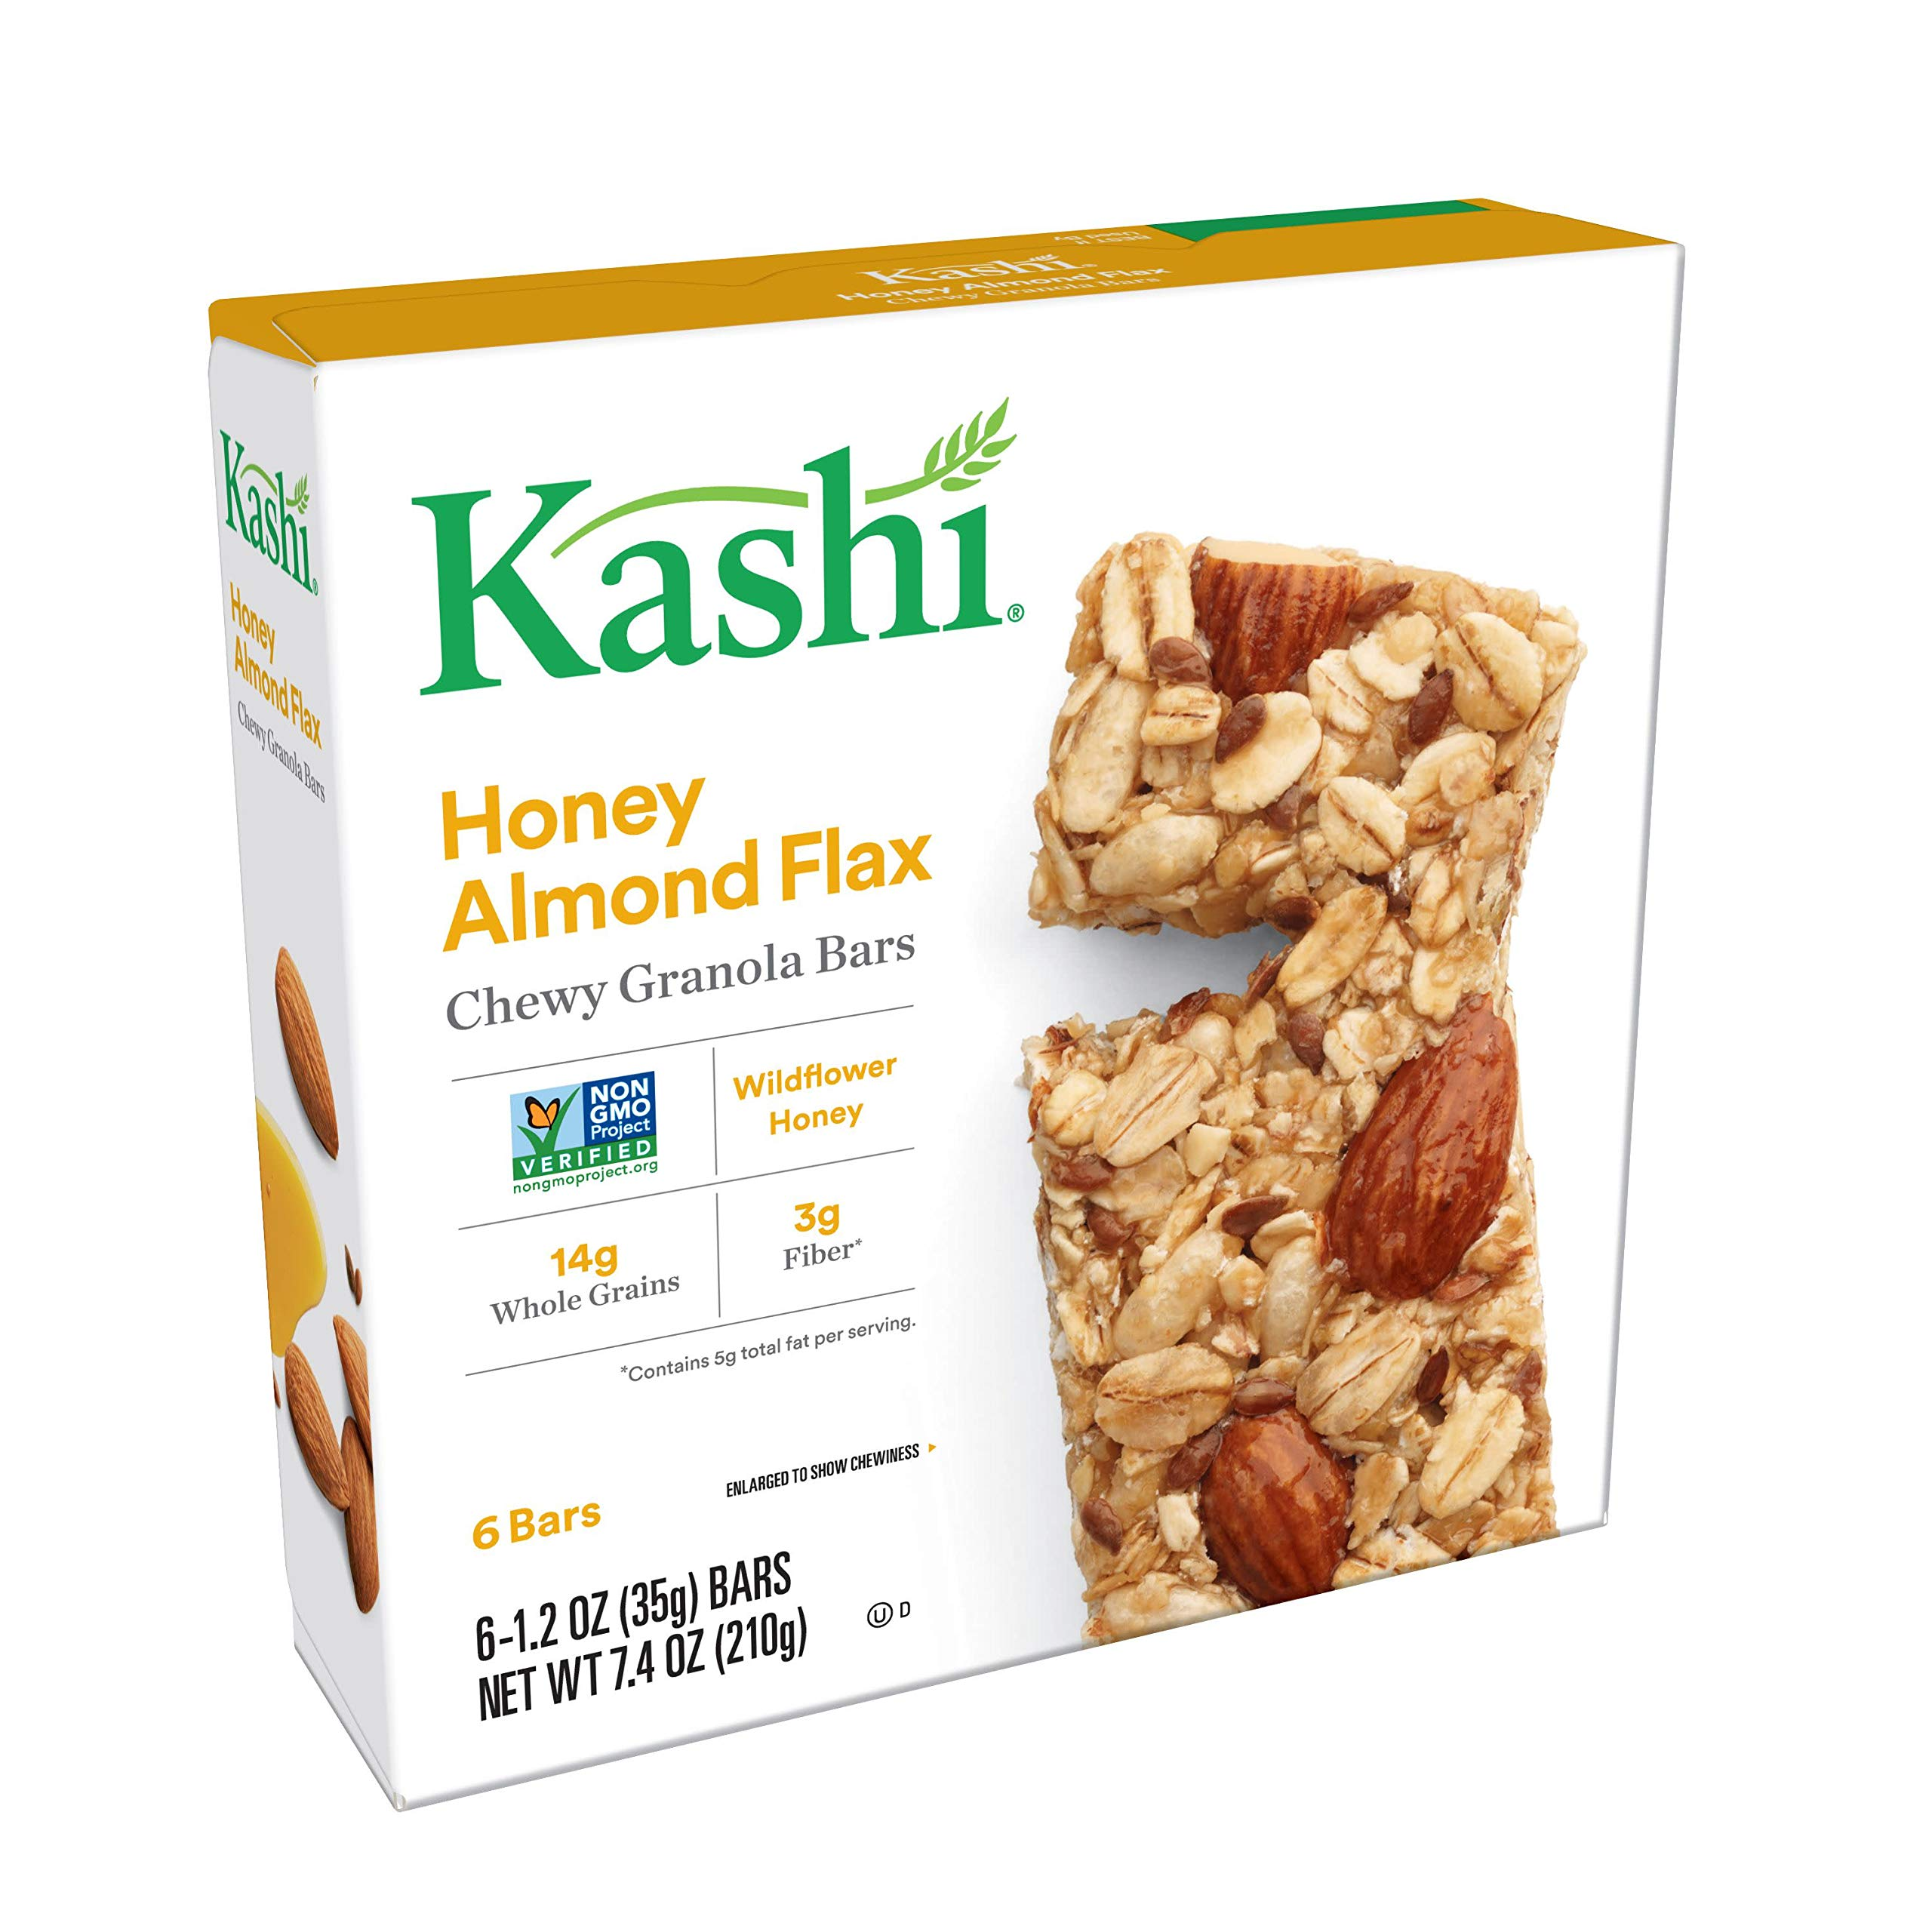 Kashi, Chewy Granola Bars, Honey Almond Flax, Non-GMO Project Verified, 7.4 oz (6 Count)(Pack of 8)